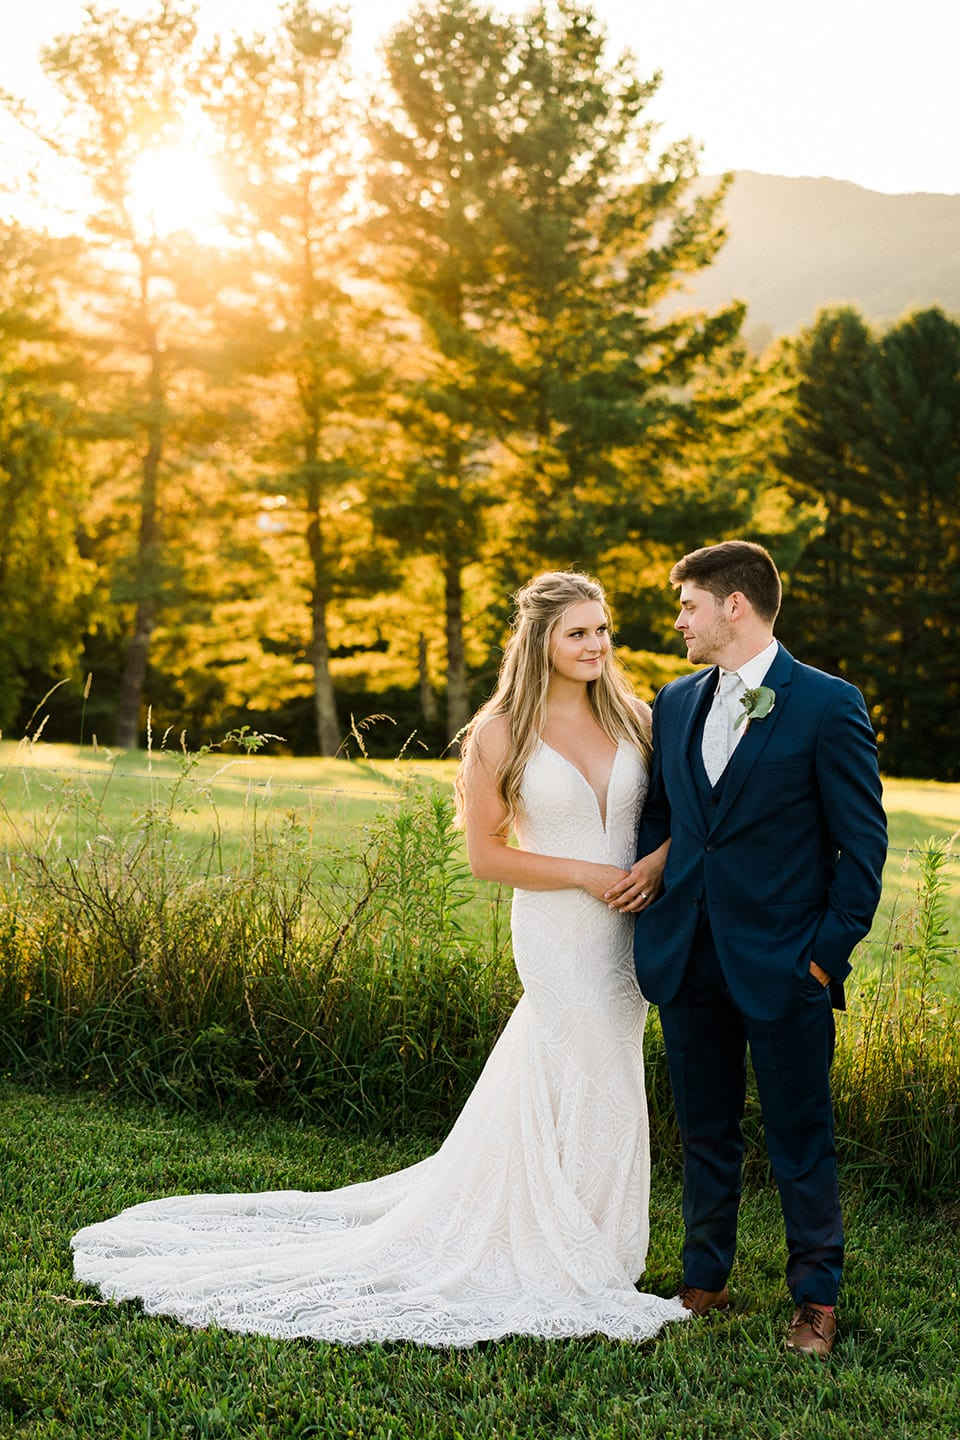 Bride and Groom cuddle in a field at sunset